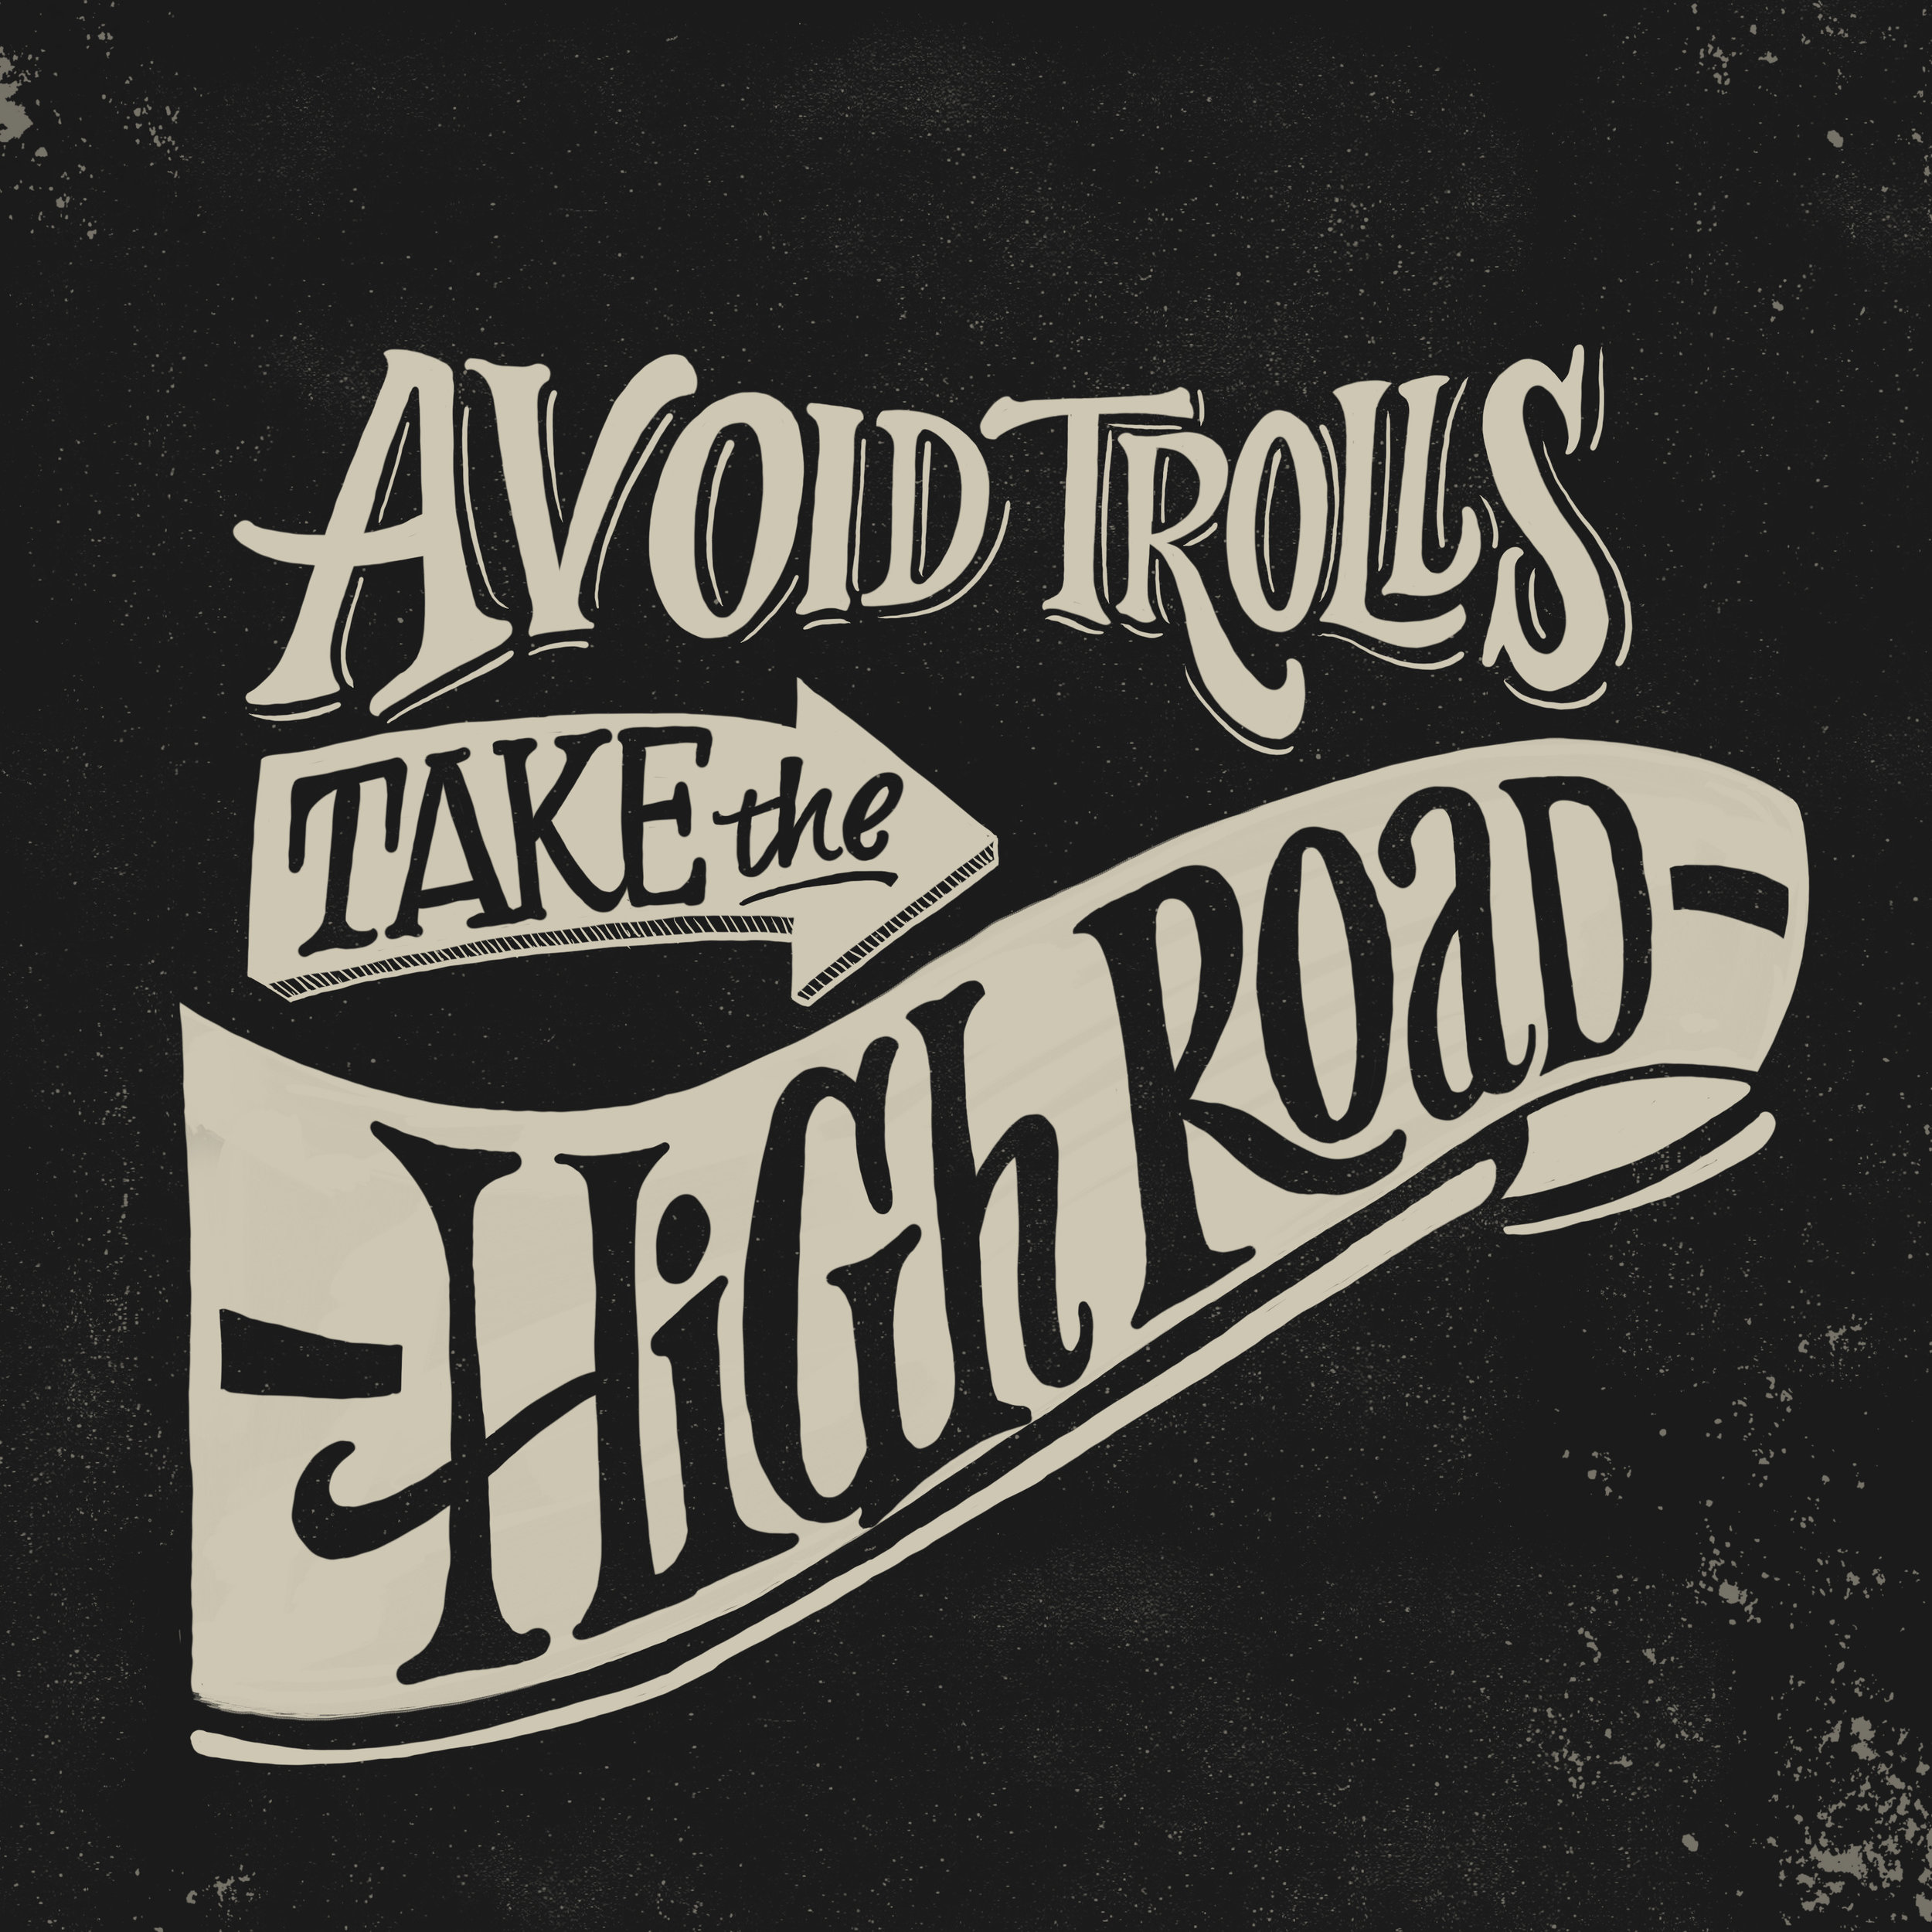 avoid trolls take the high road.jpg